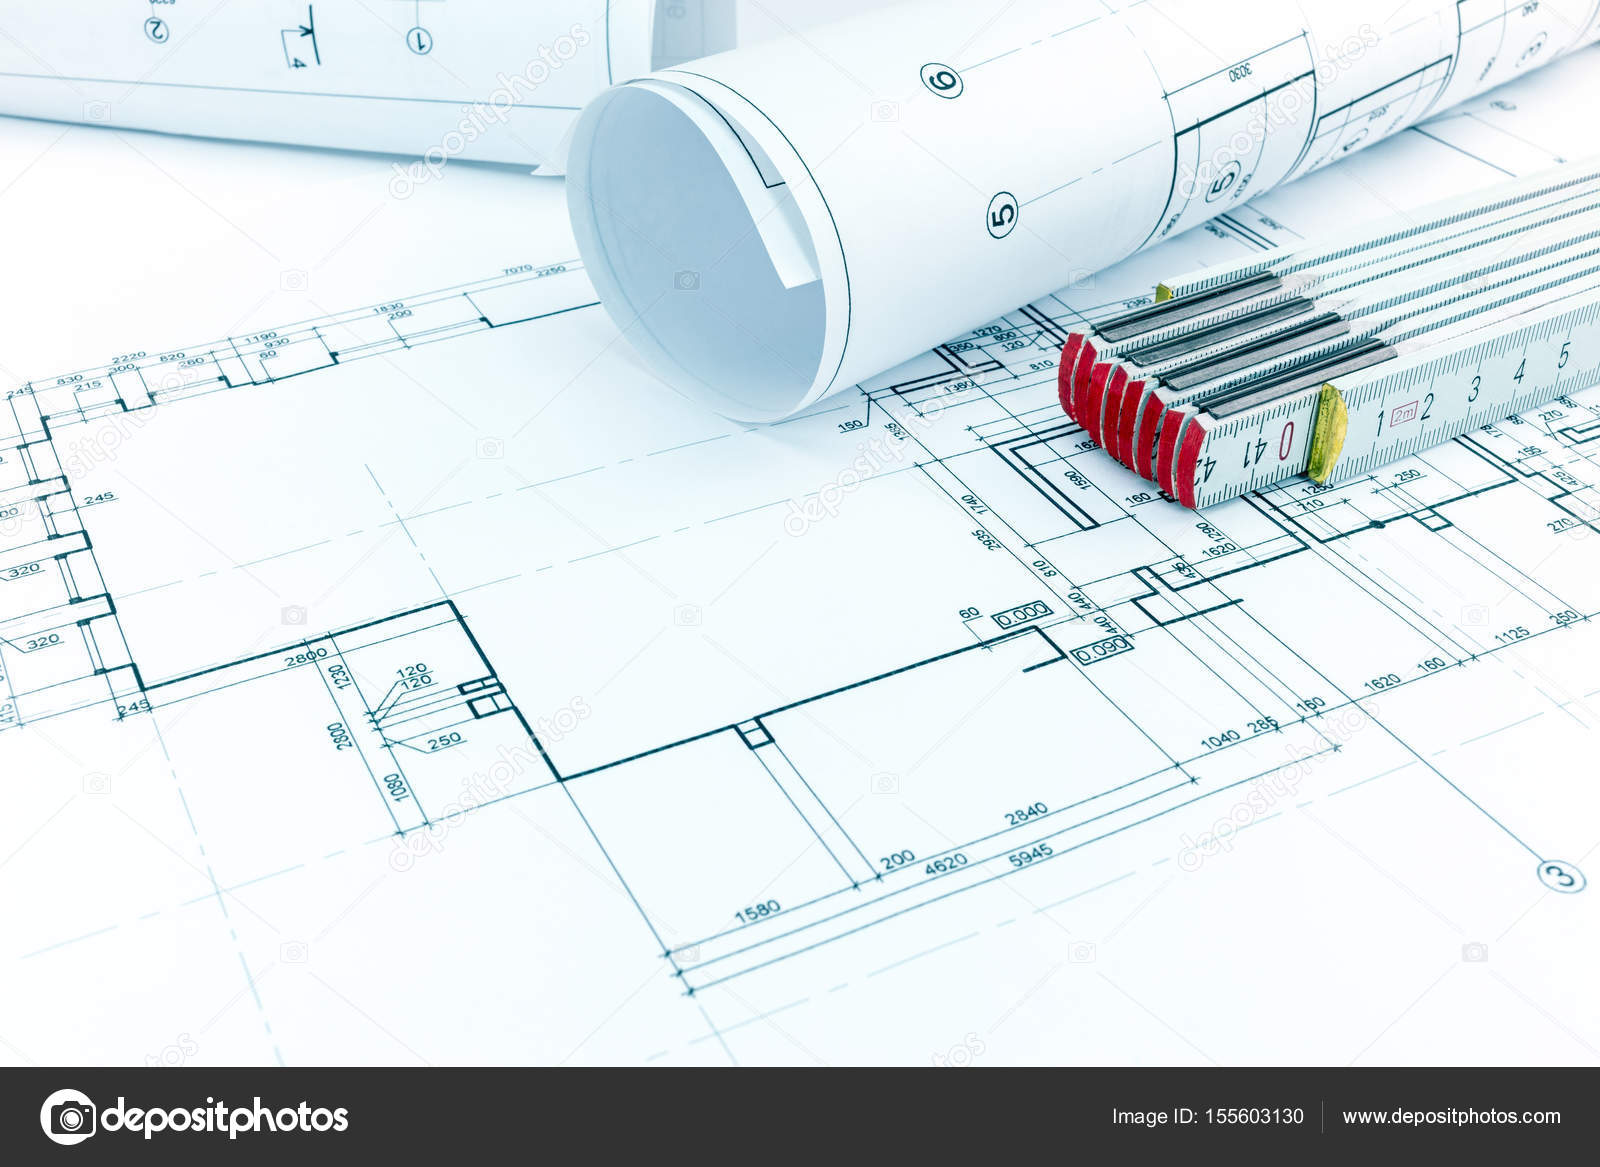 House plan rolls of architect blueprints and folding ruler on desk house plan rolls of architect blueprints and folding ruler on desk stock photo malvernweather Images